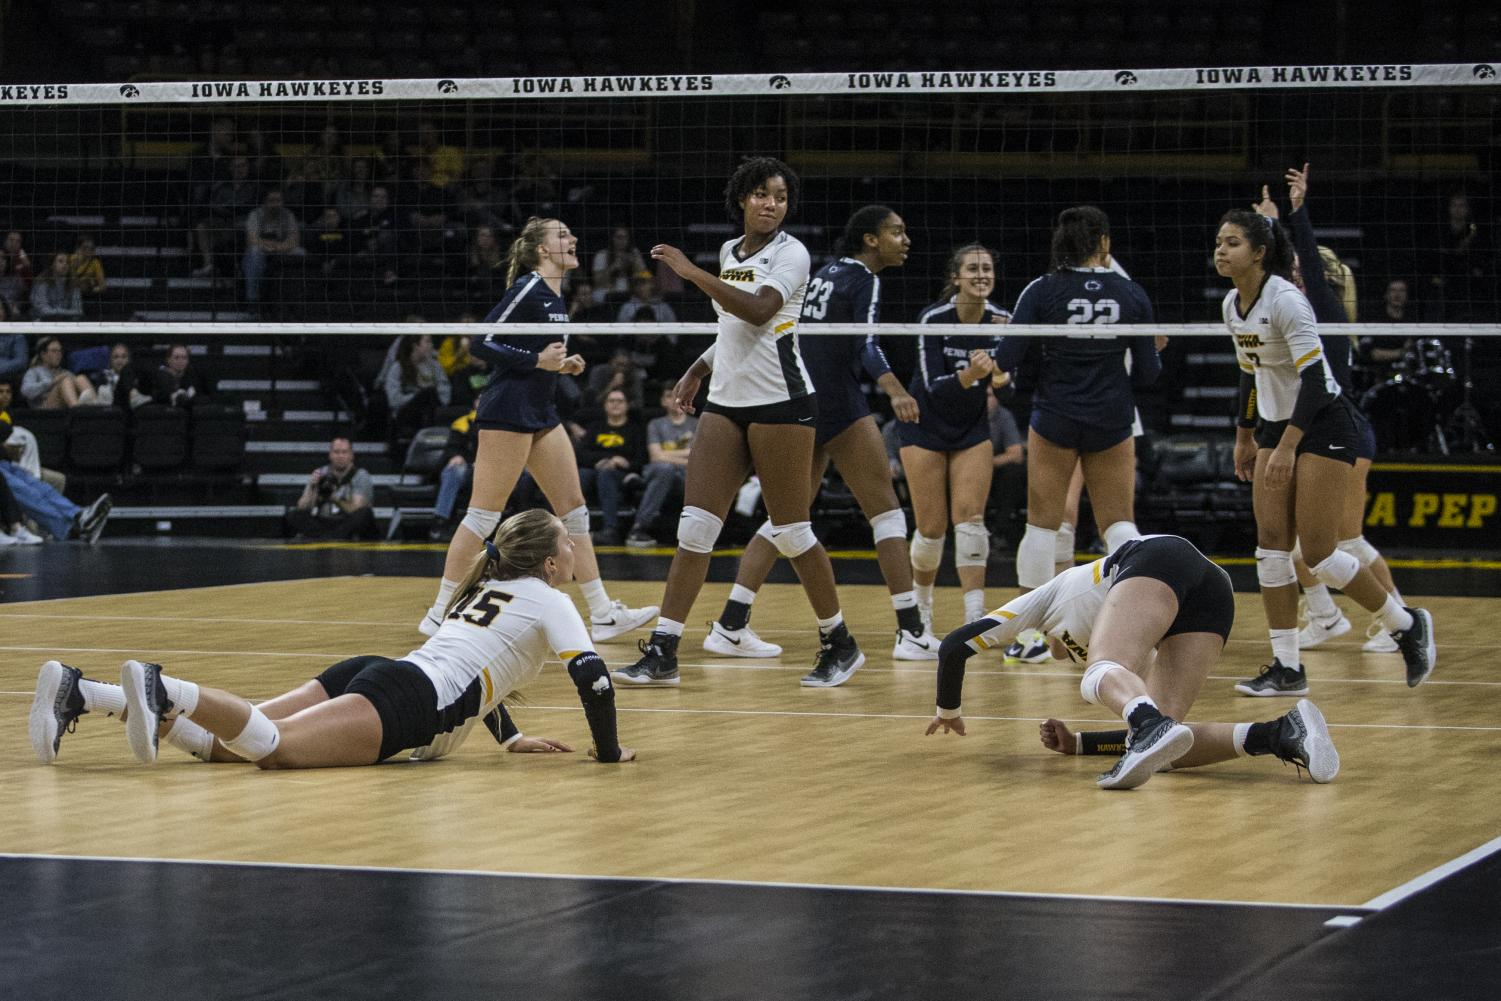 Iowa players dive for the ball during a volleyball match between Iowa and Penn State on Saturday, Nov. 3, 2018. The Hawkeyes were shut out by the Nittany Lions, 3-0.